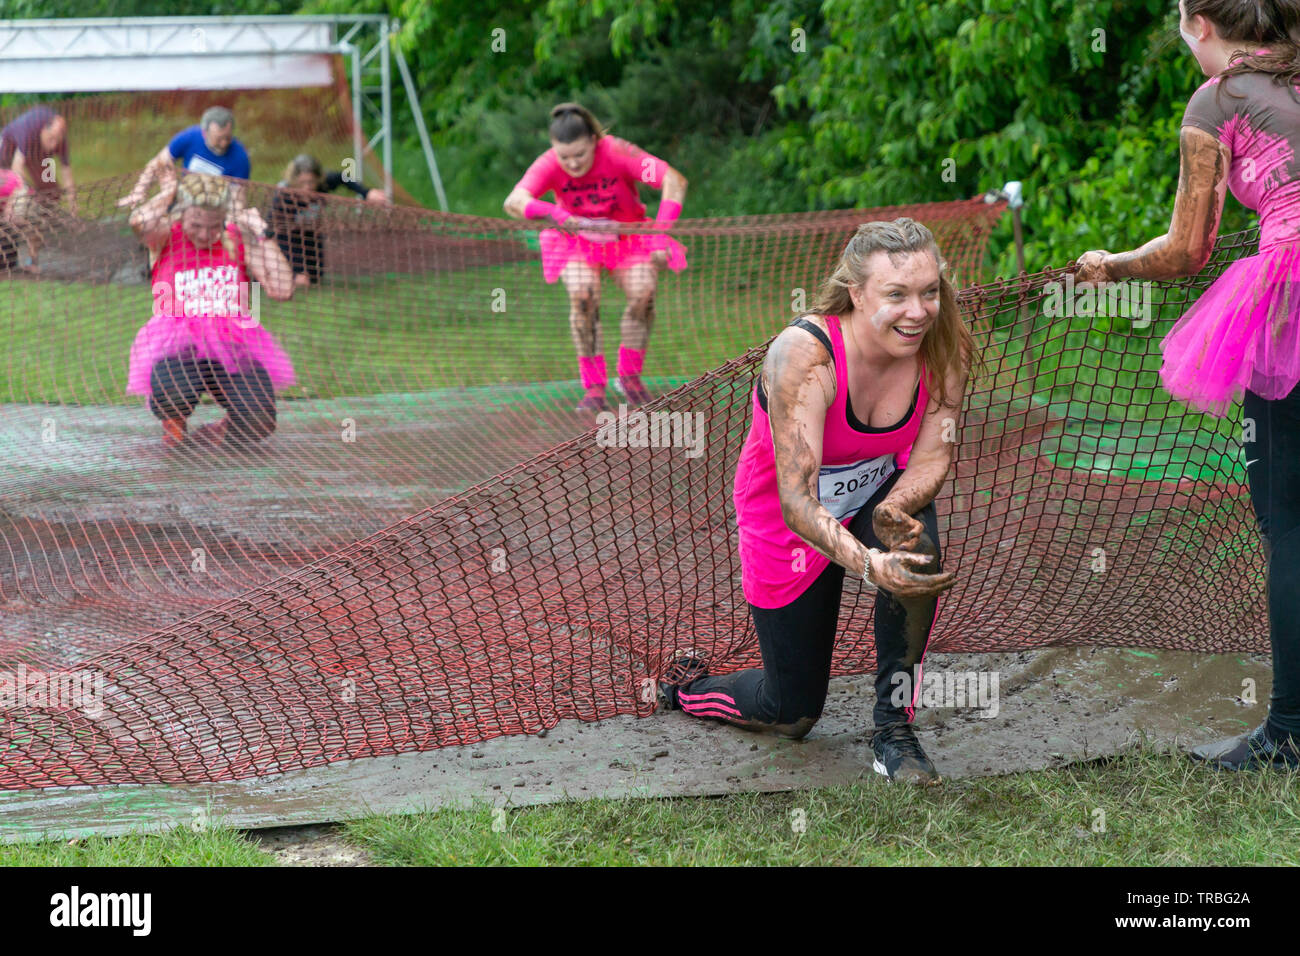 Warrington, UK. 2nd June 2019. Warrington, UK. 2nd June 2019. Race for Life 2019, Warrington, in aid of Cancer Research. Contestants crawl underneath nets as one of their obstacles Credit: John Hopkins/Alamy Live News - Stock Image